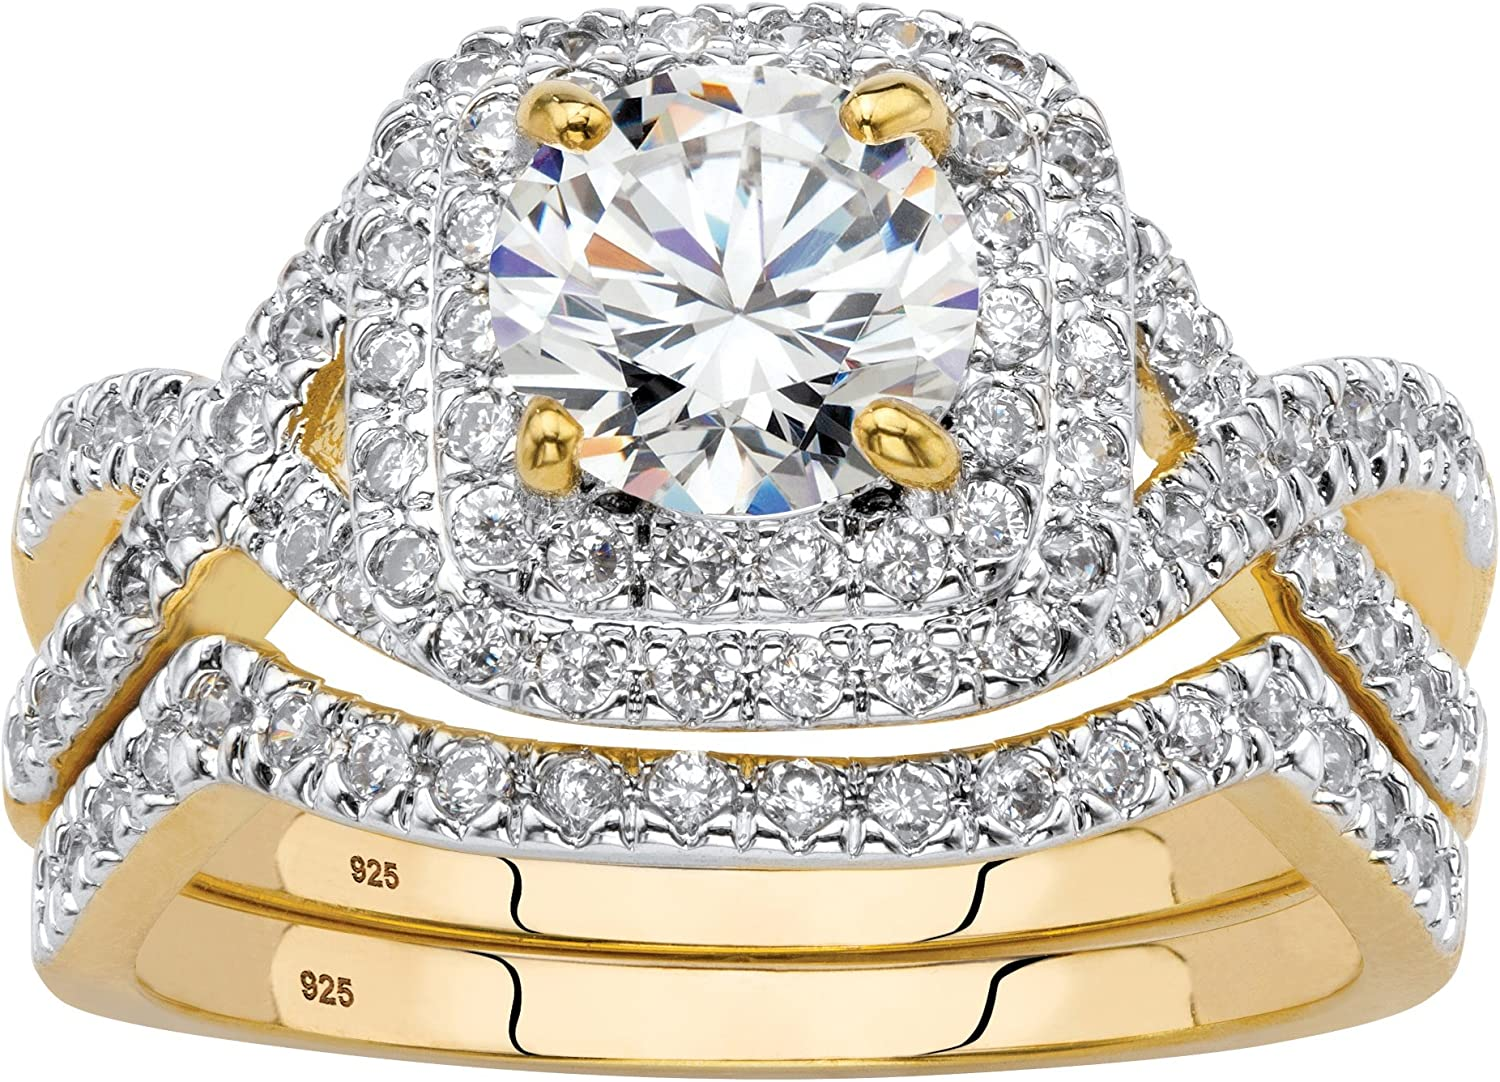 14K Yellow Gold over Sterling Silver Round Cubic Zirconia Bridal Ring Set